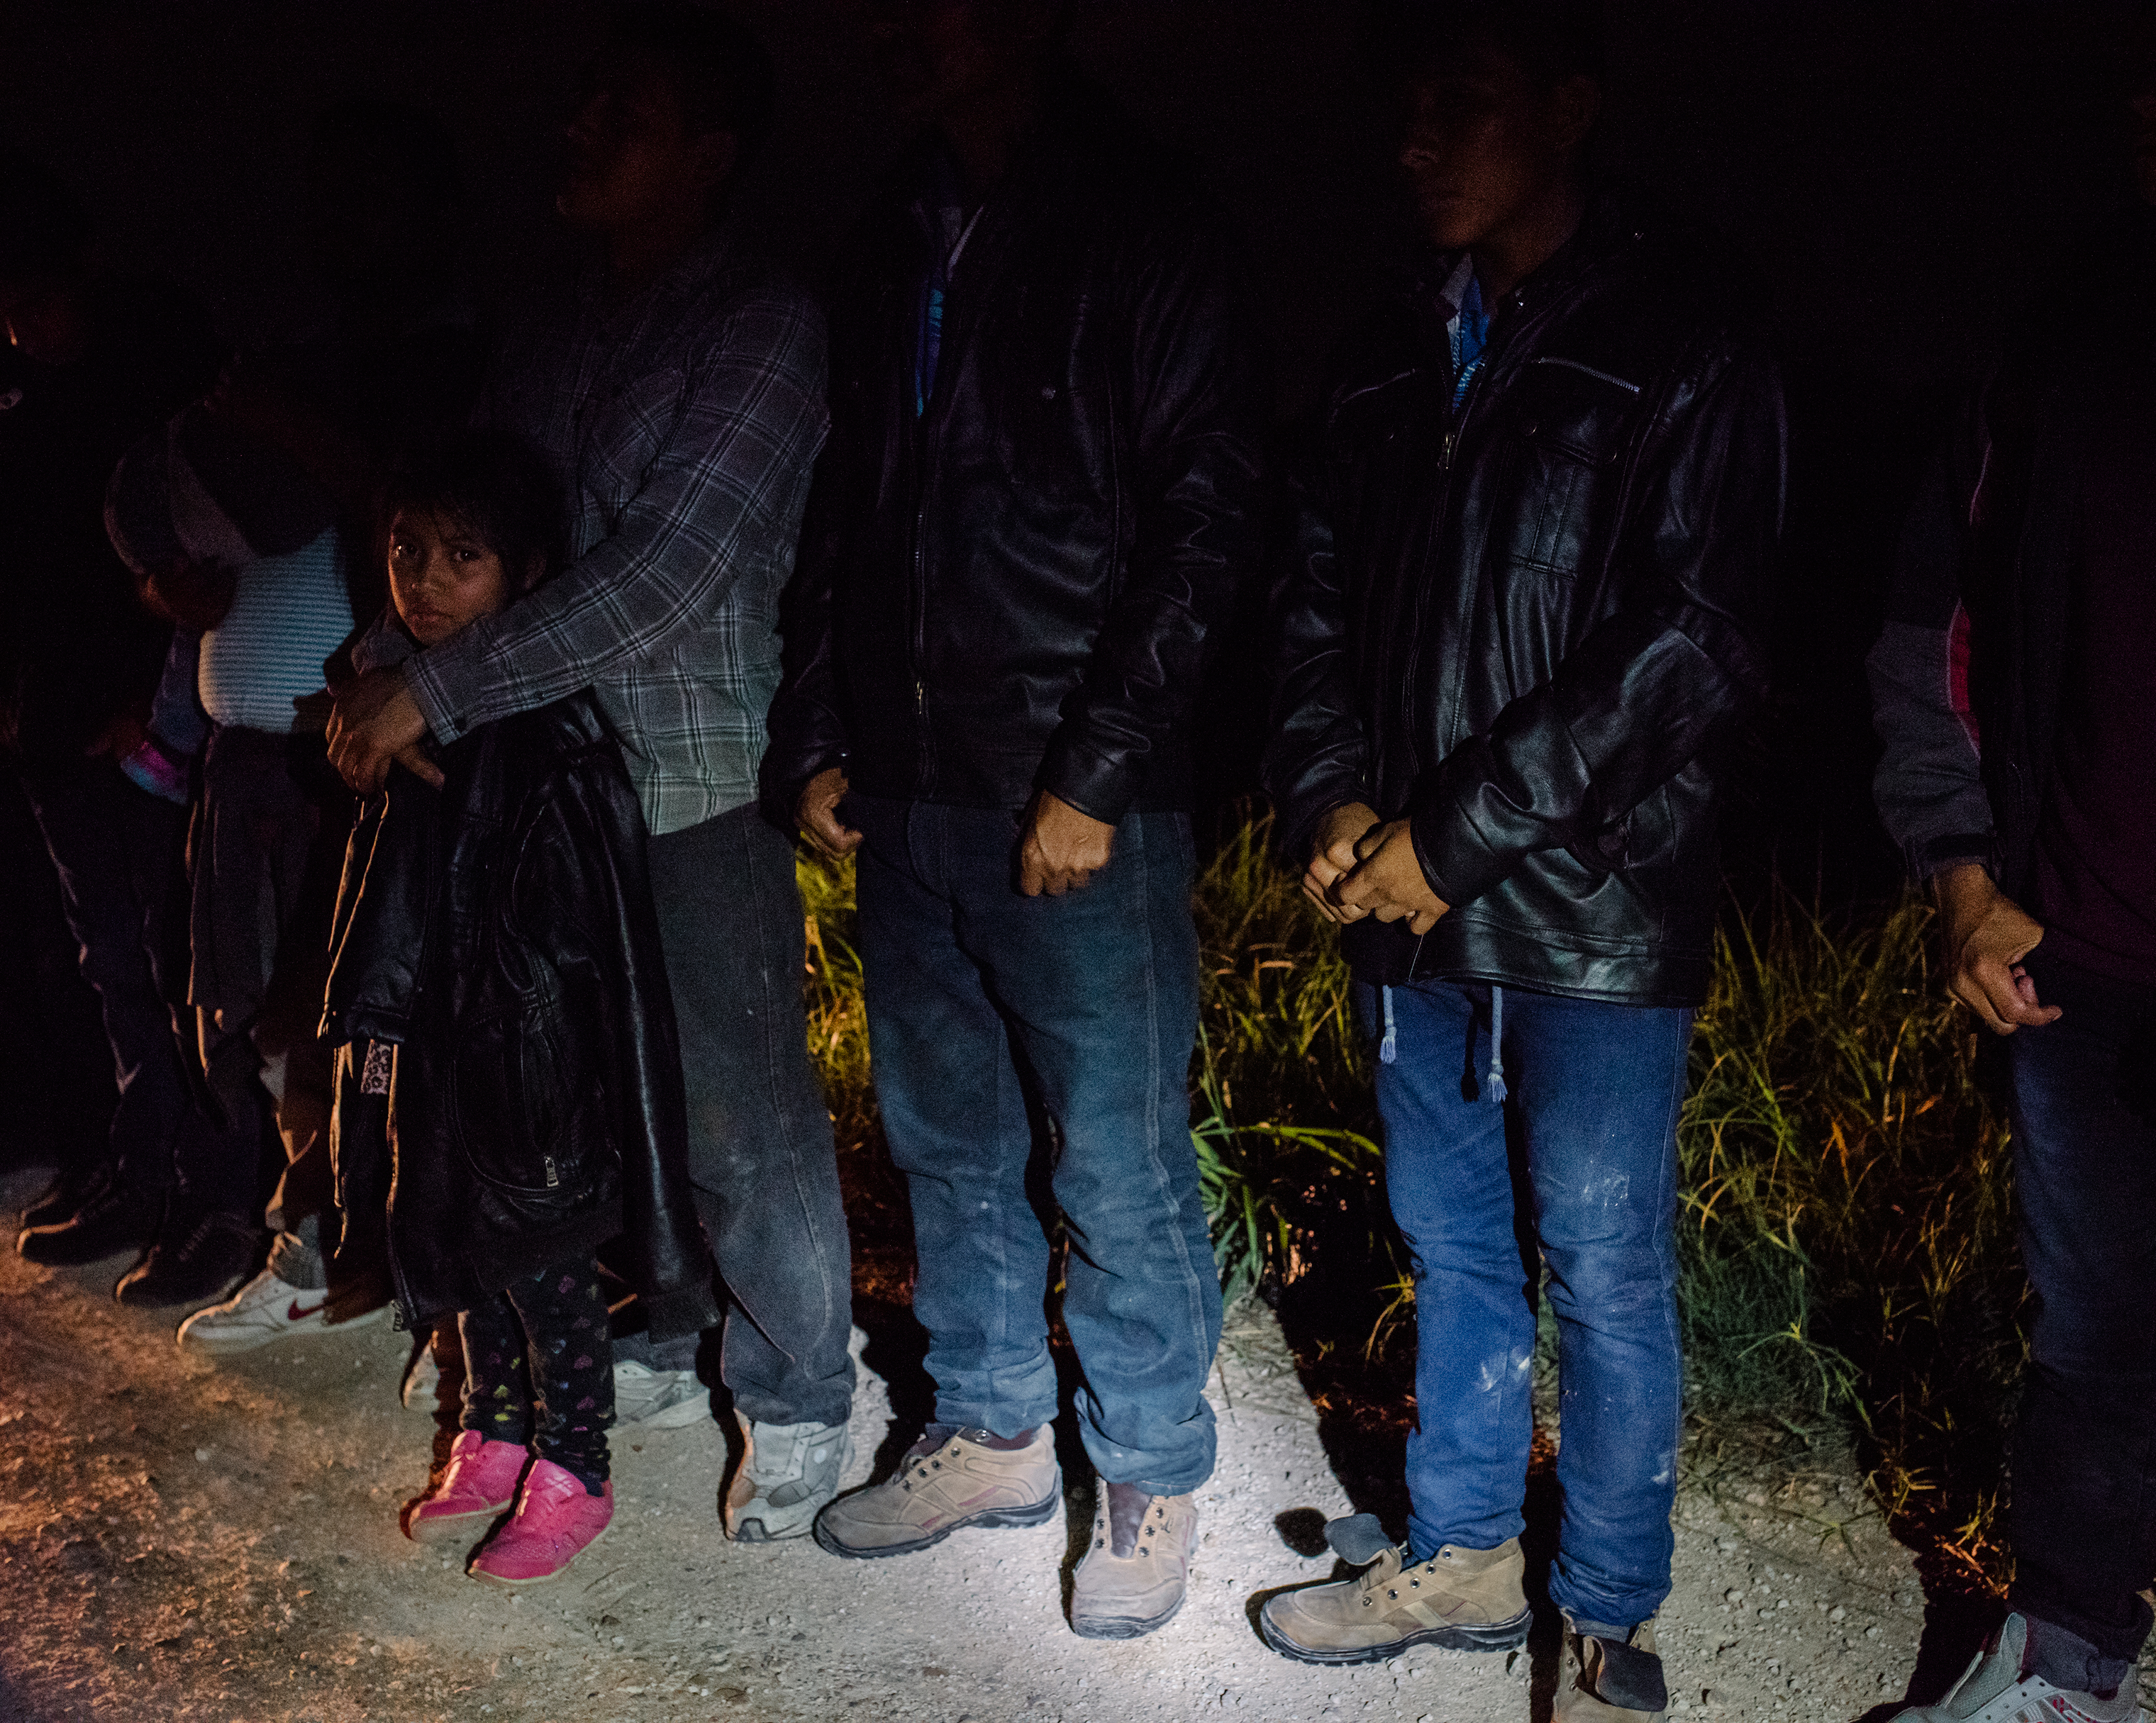 U.S. Border Patrol agents arrest a group of 43 Central American migrants, including children, on a roadside in McAllen, Texas, during a predawn patrol in late September.